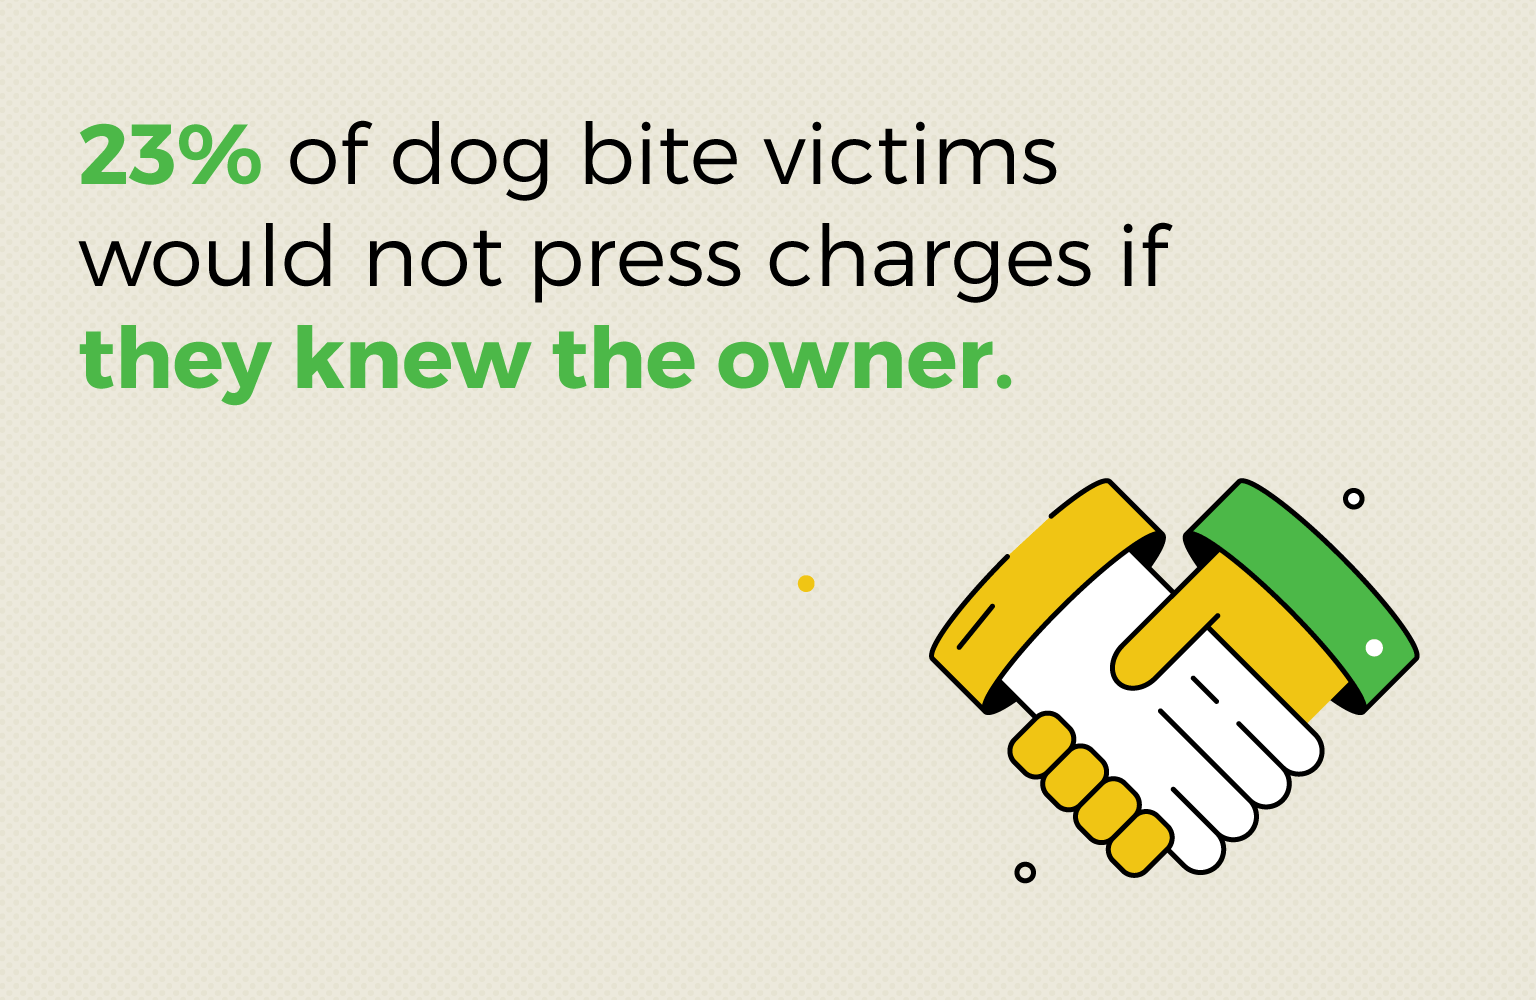 23% of dog bite victims would not press charges if they knew the owner